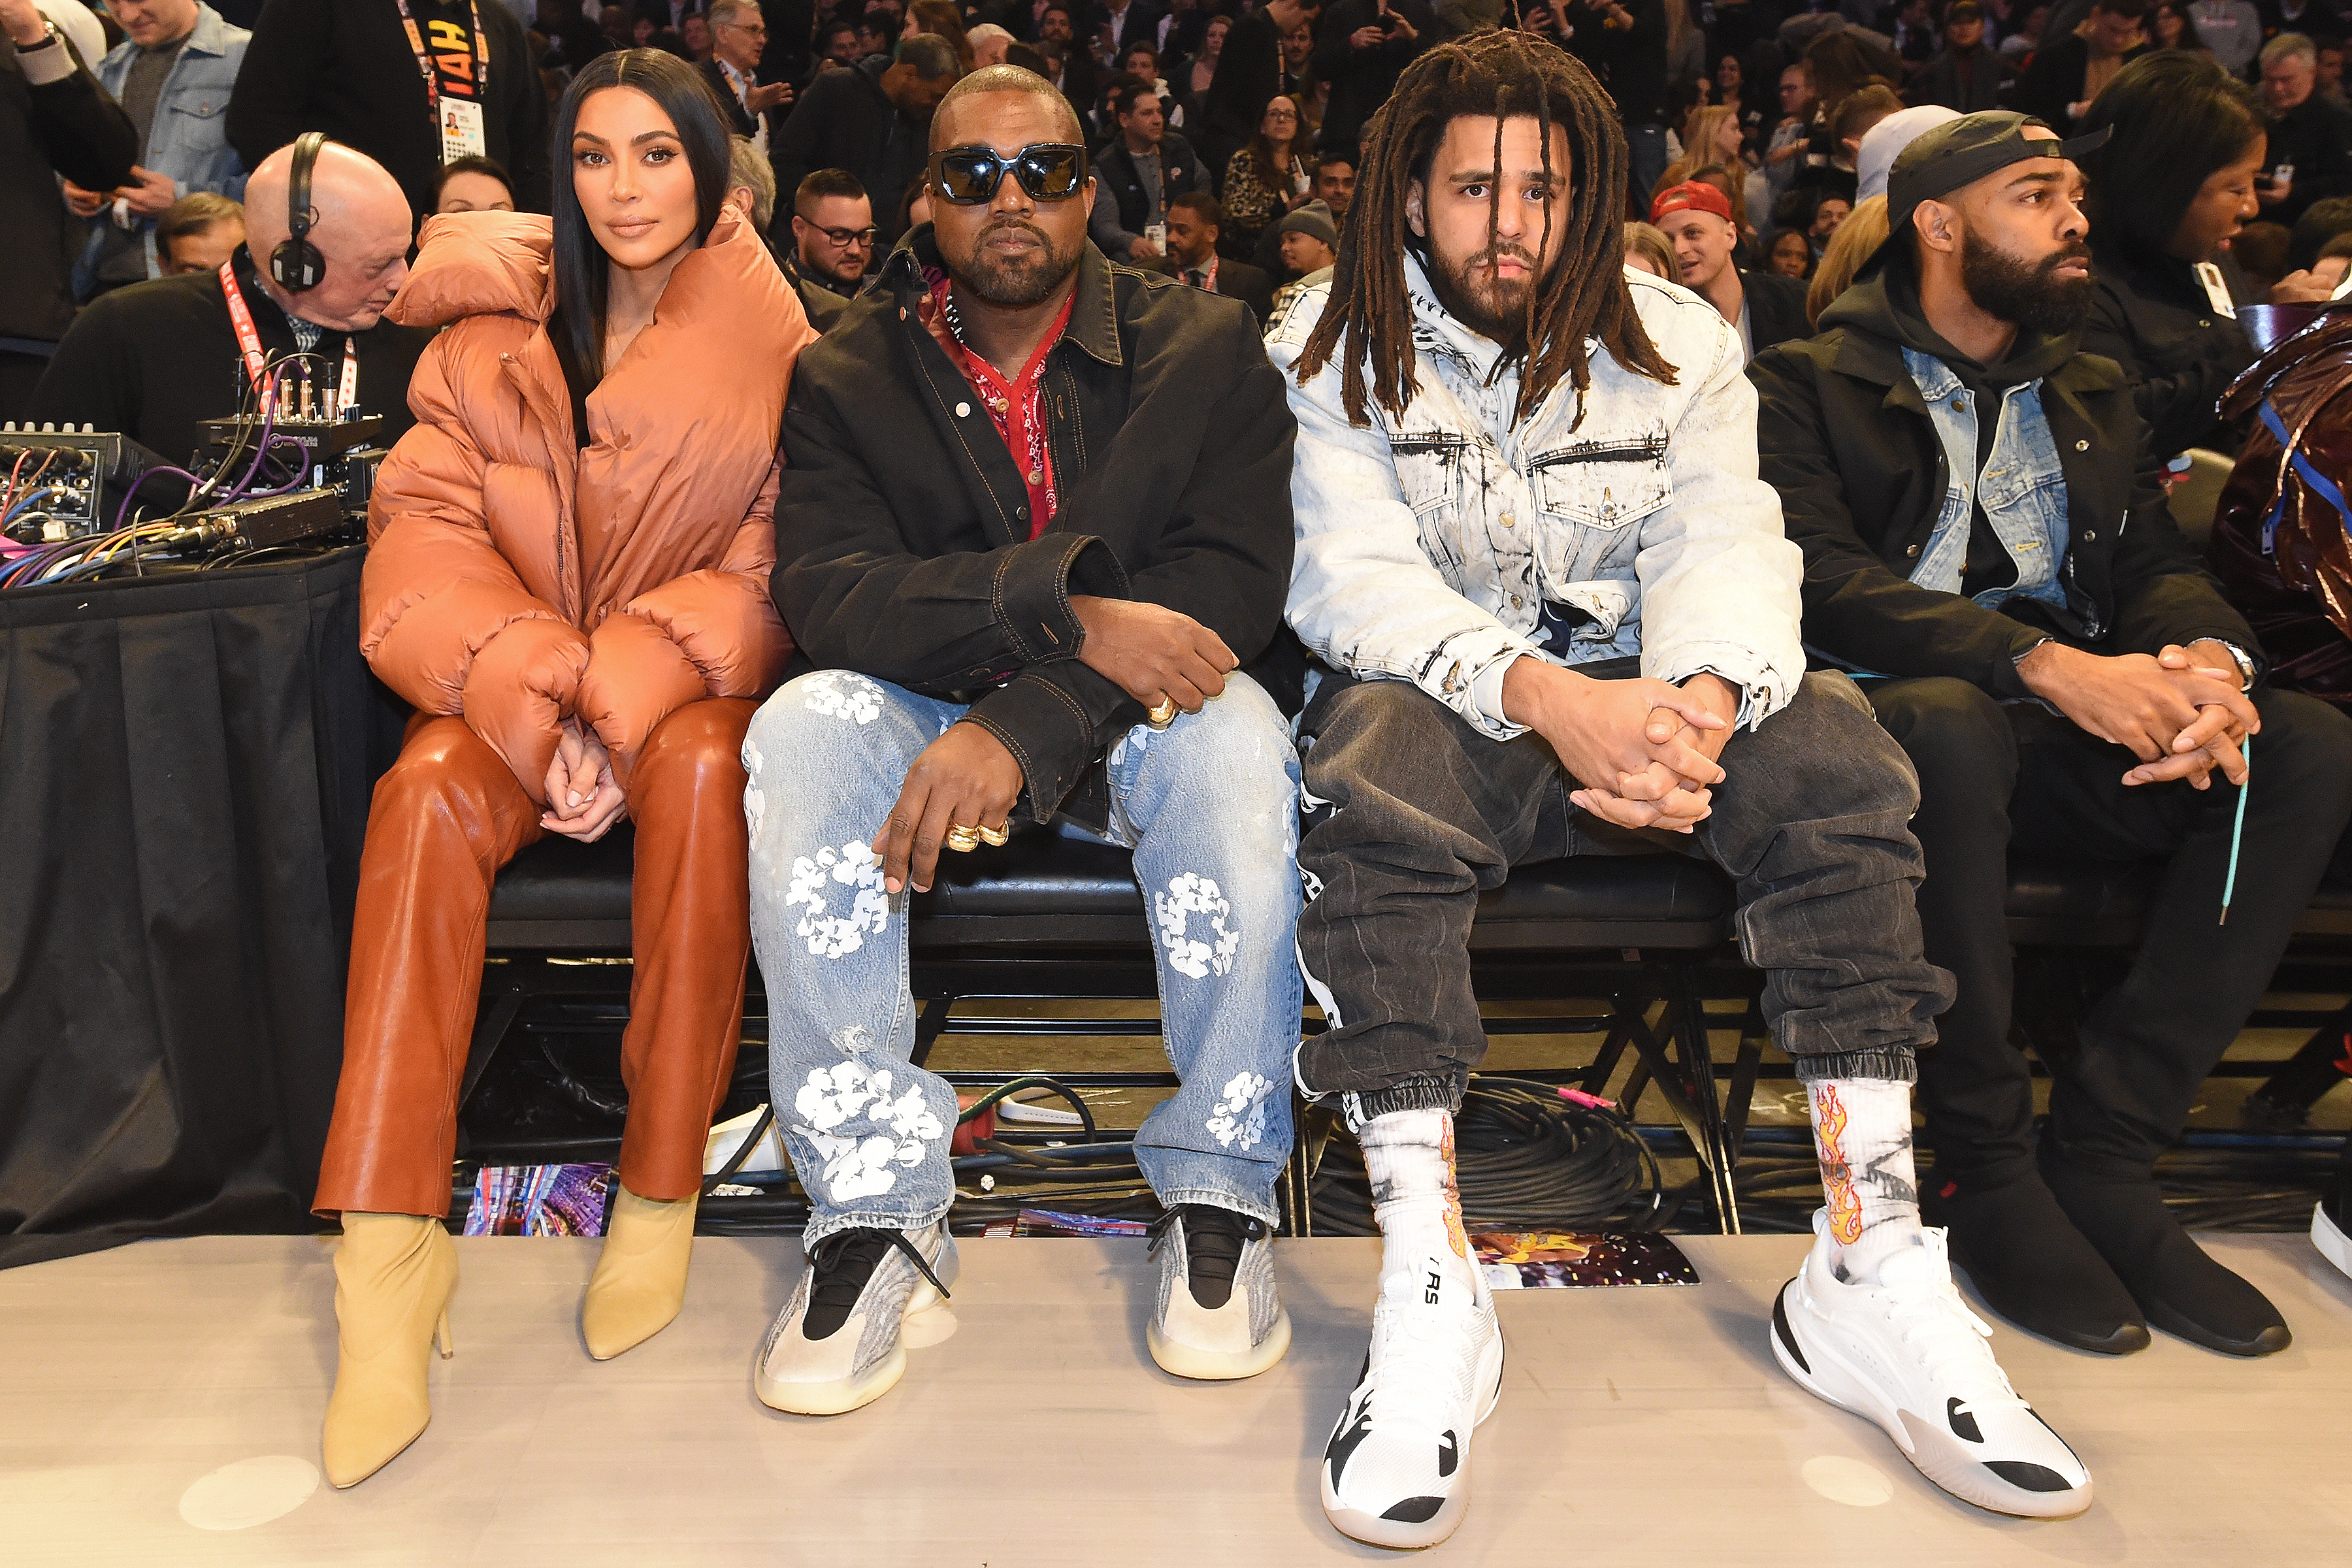 Kim Kardashian And Kanye West Have Date Night At Nba All Star Game Access